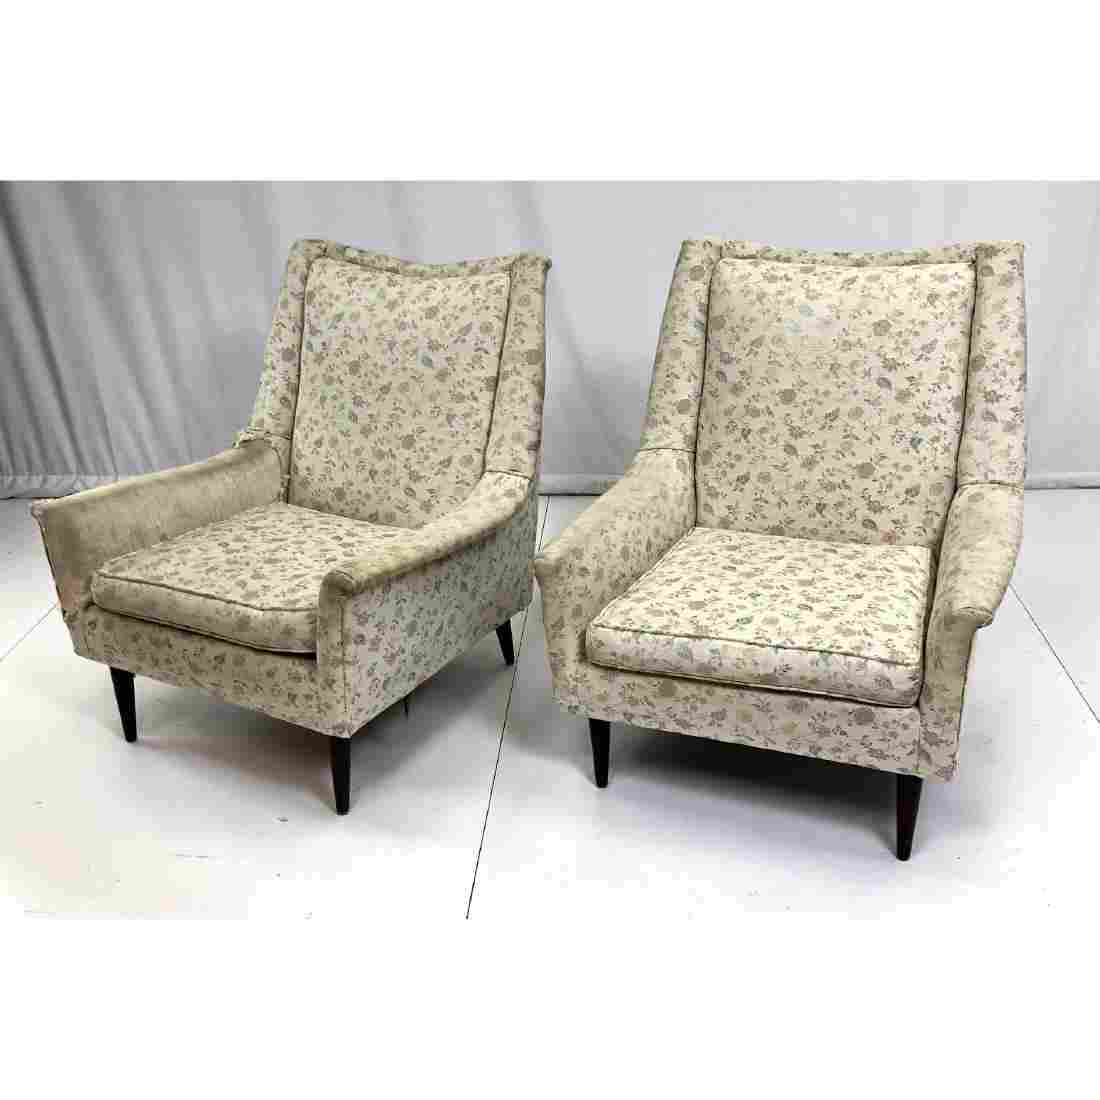 Pr Paul McCobb Style Tall Modernist Lounge Chairs